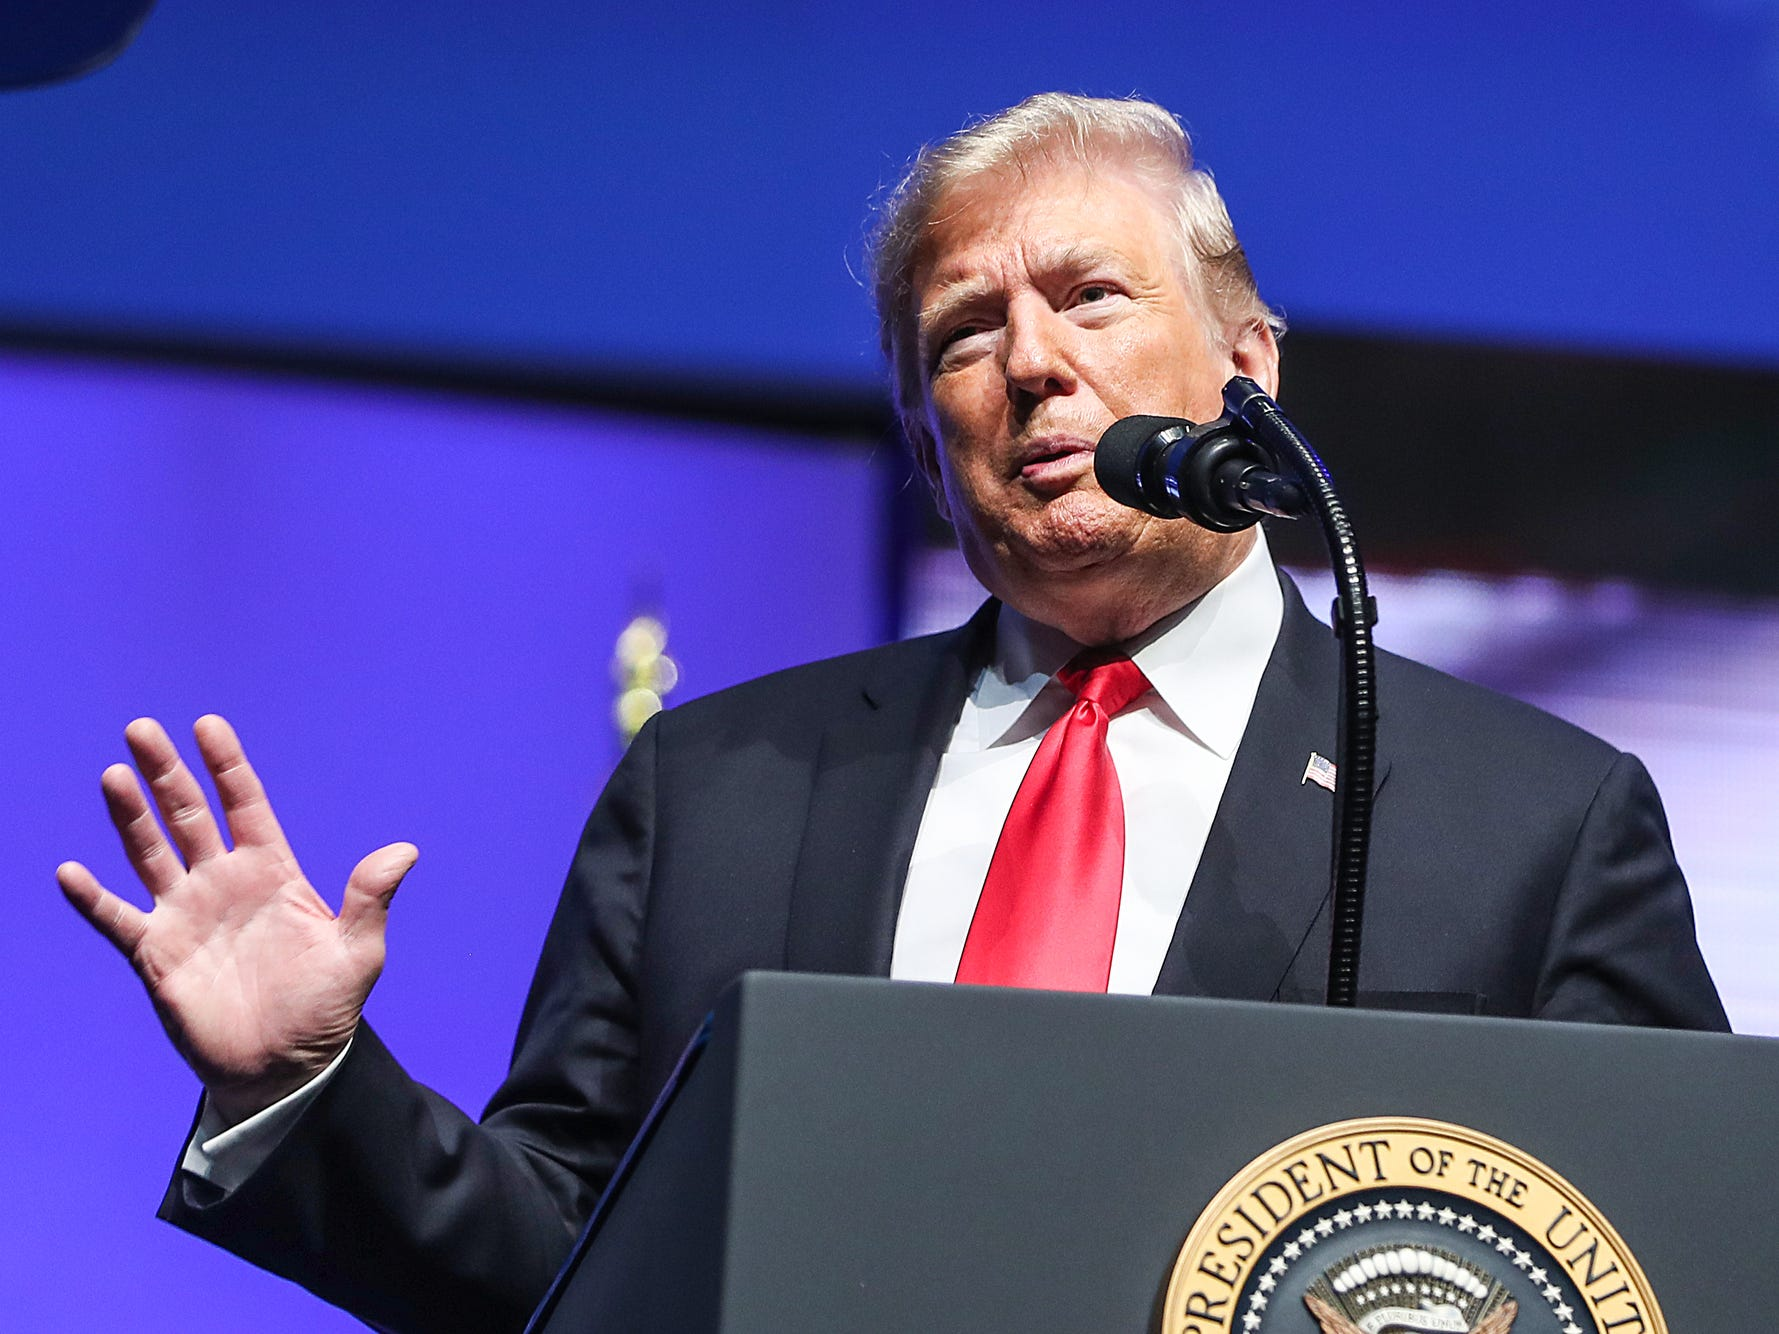 United States President Donald Trump speaks to attendees of the annual Future Farmers of America Convention and Expo at Banker's Life Fieldhouse in Indianapolis, Saturday, Oct. 27, 2018.